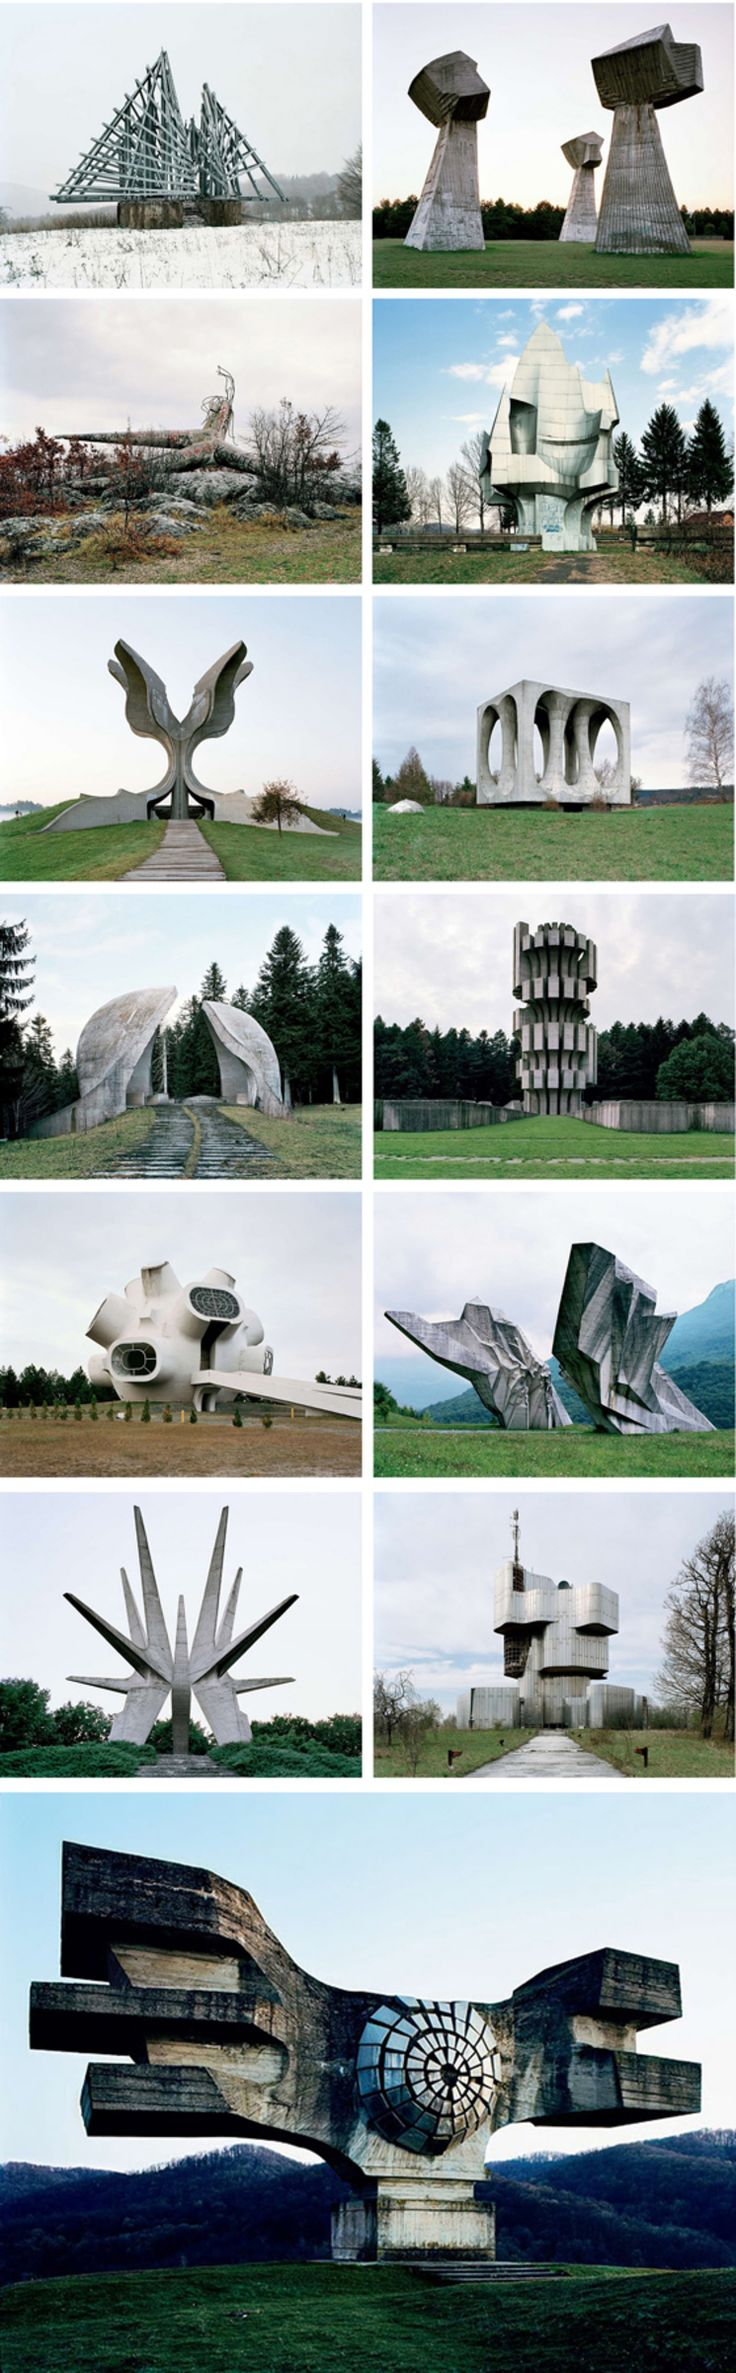 Futuristic Sculptures in Yugoslavia